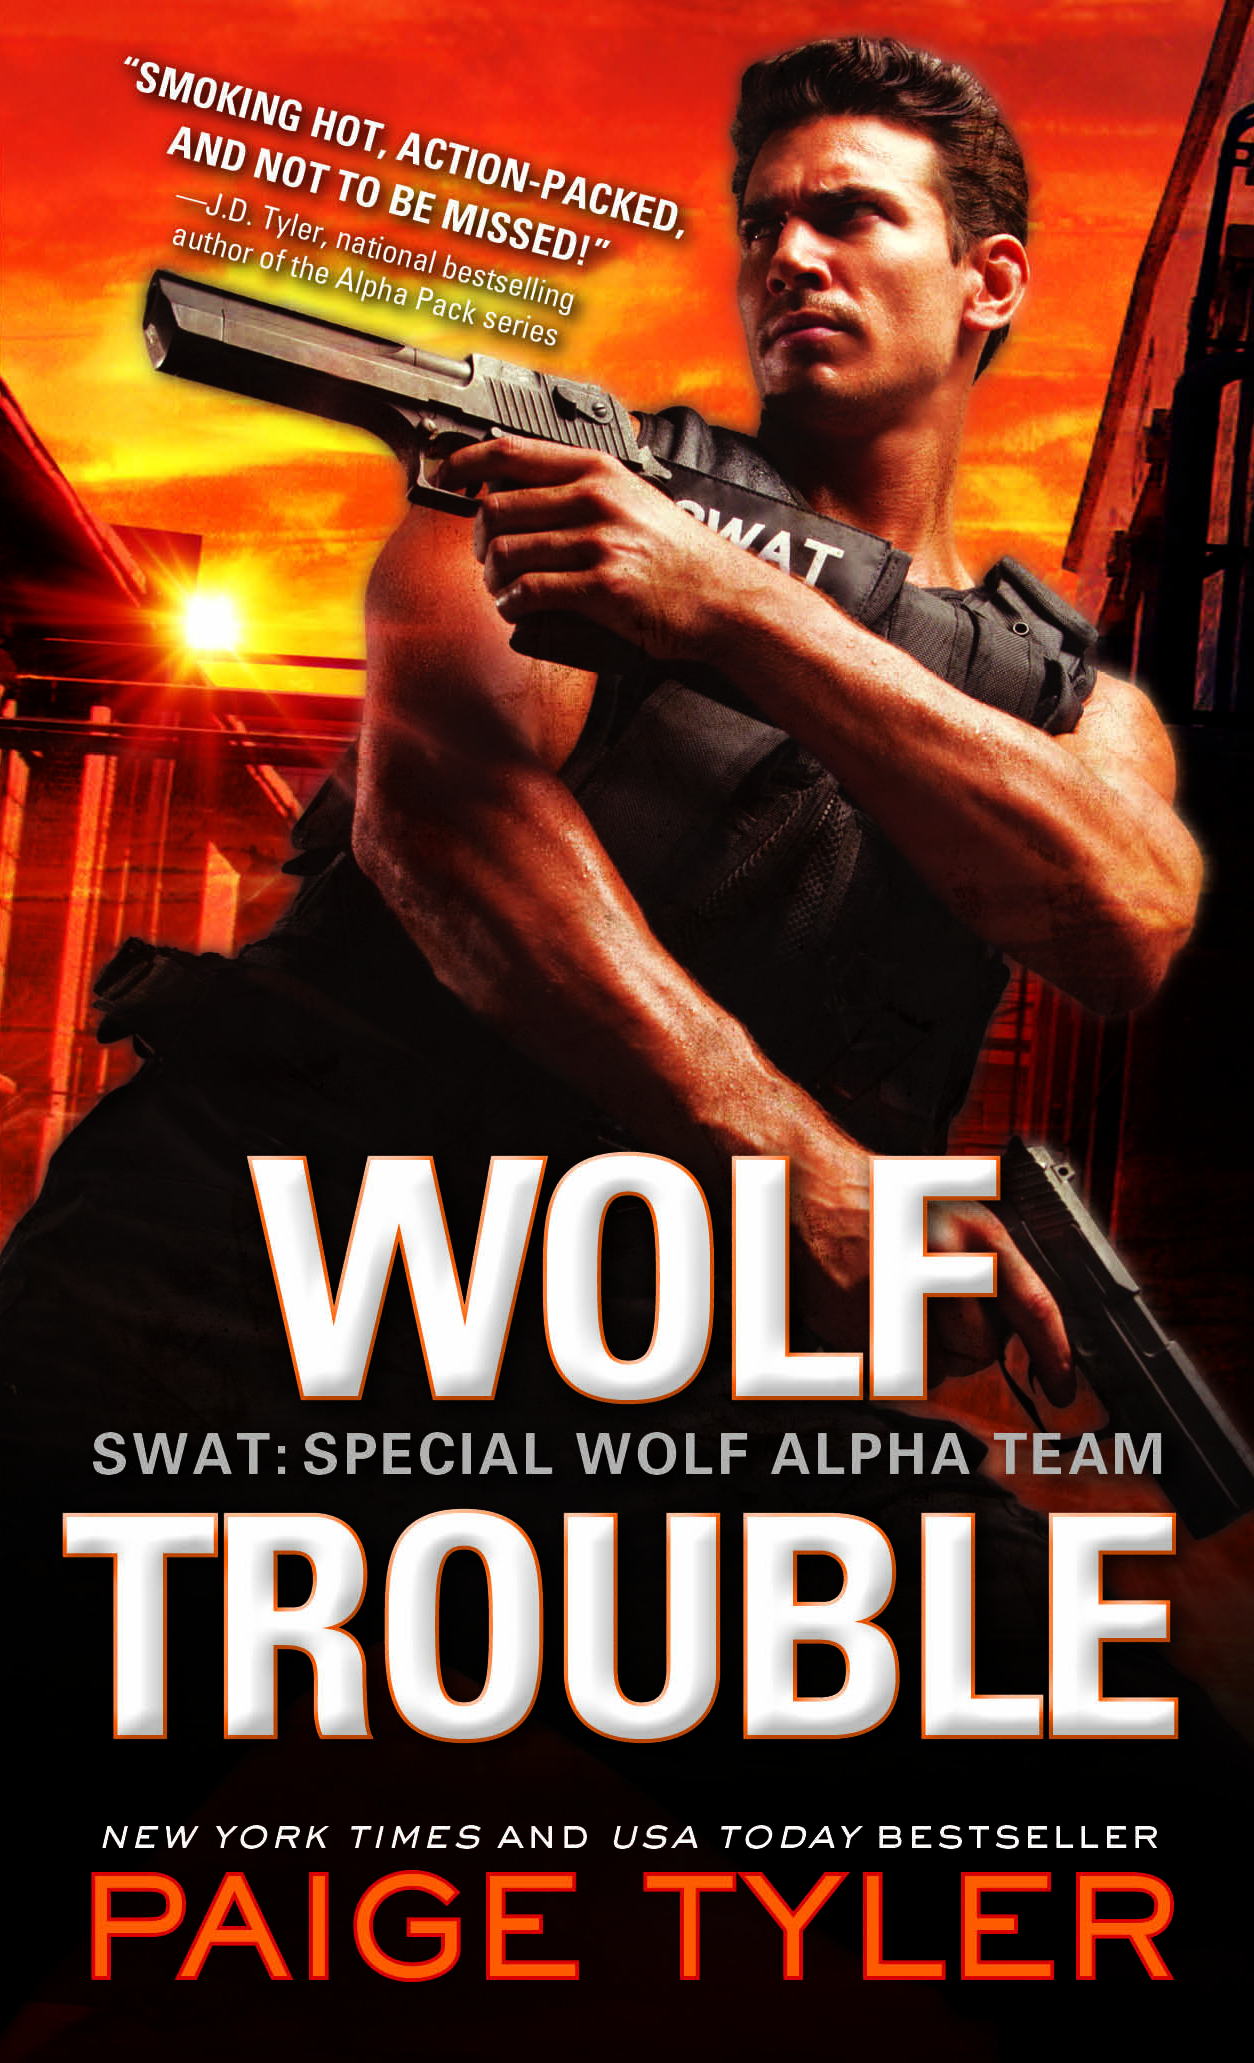 1b – SWAT 2Wolf Trouble Hi-Res